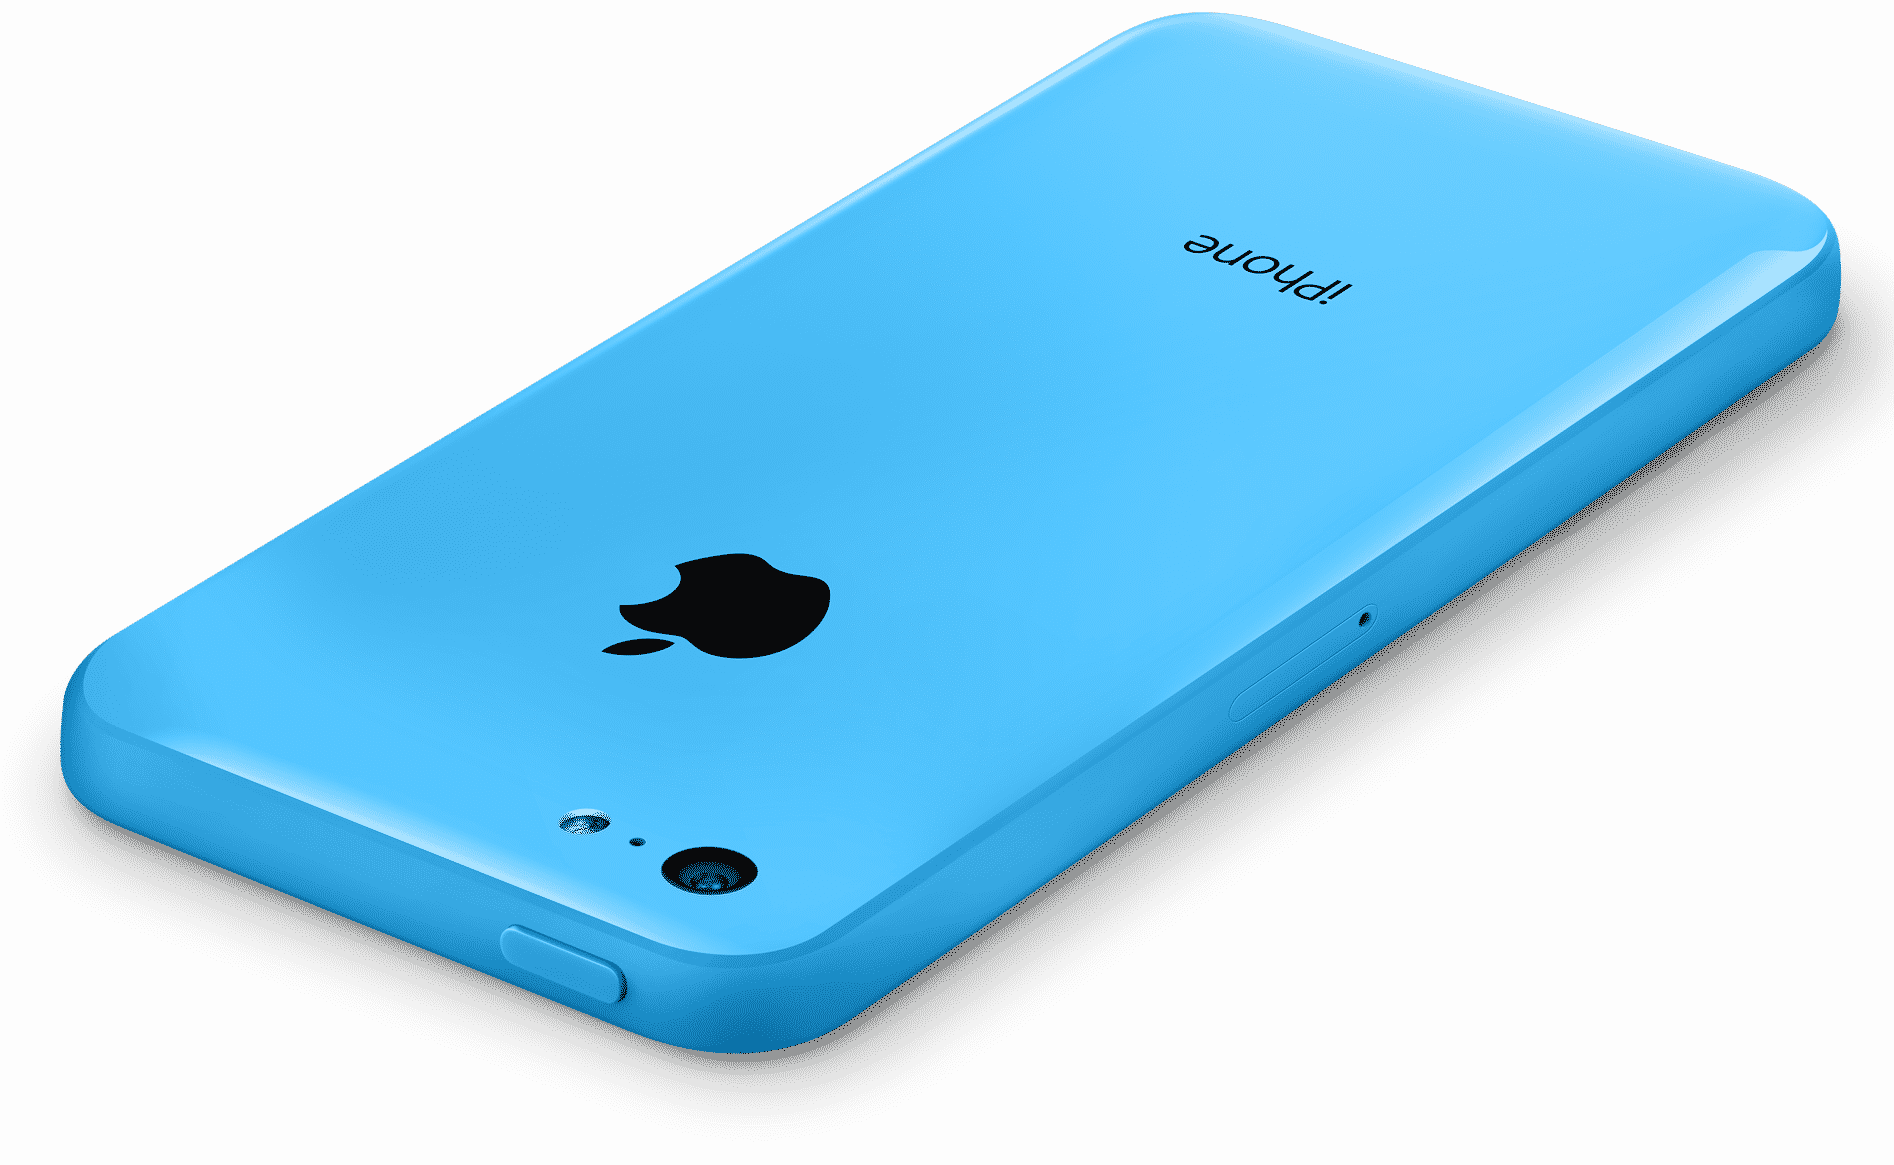 apple iphone 5c bleu 32 go prix monpetitmobile. Black Bedroom Furniture Sets. Home Design Ideas